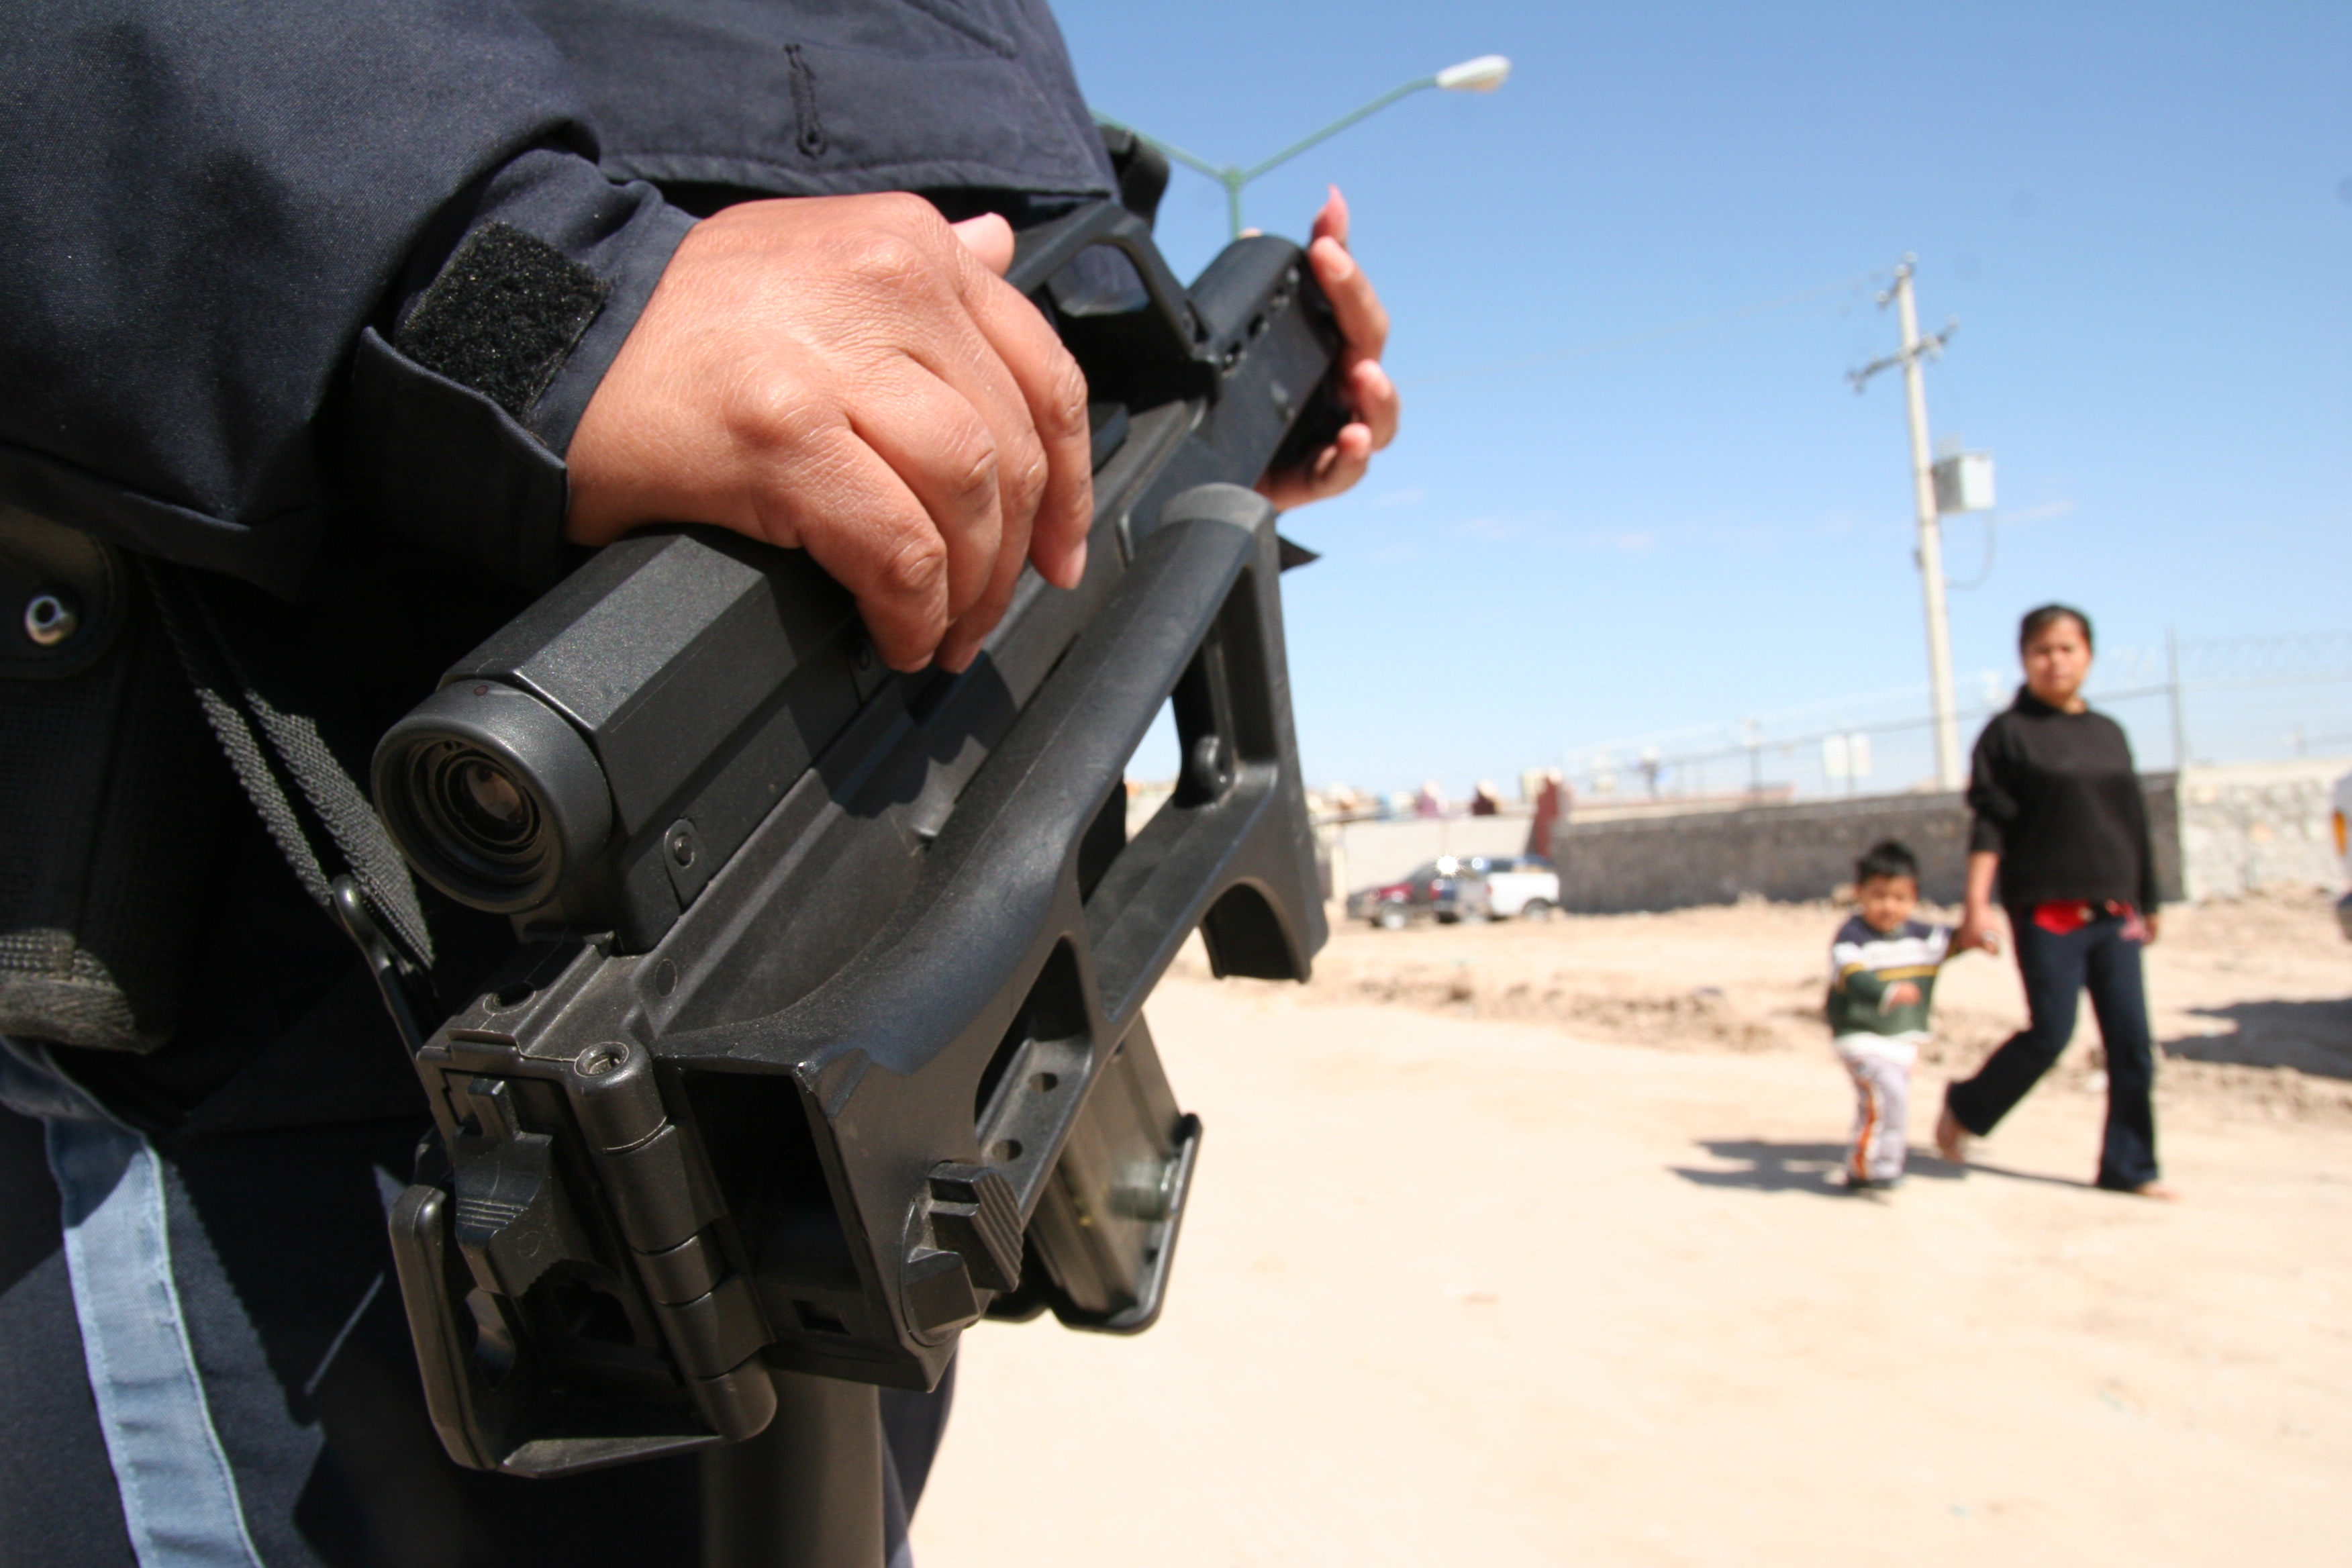 A Mexican Federal Police officer stands guard in a neighborhood on the outskirts of Juárez. Residents said some of their neighbors had left when the Sinaloa and Juárez cartels fought during some of the worst years of the violence. March 15, 2009 (Lorne Matalon)